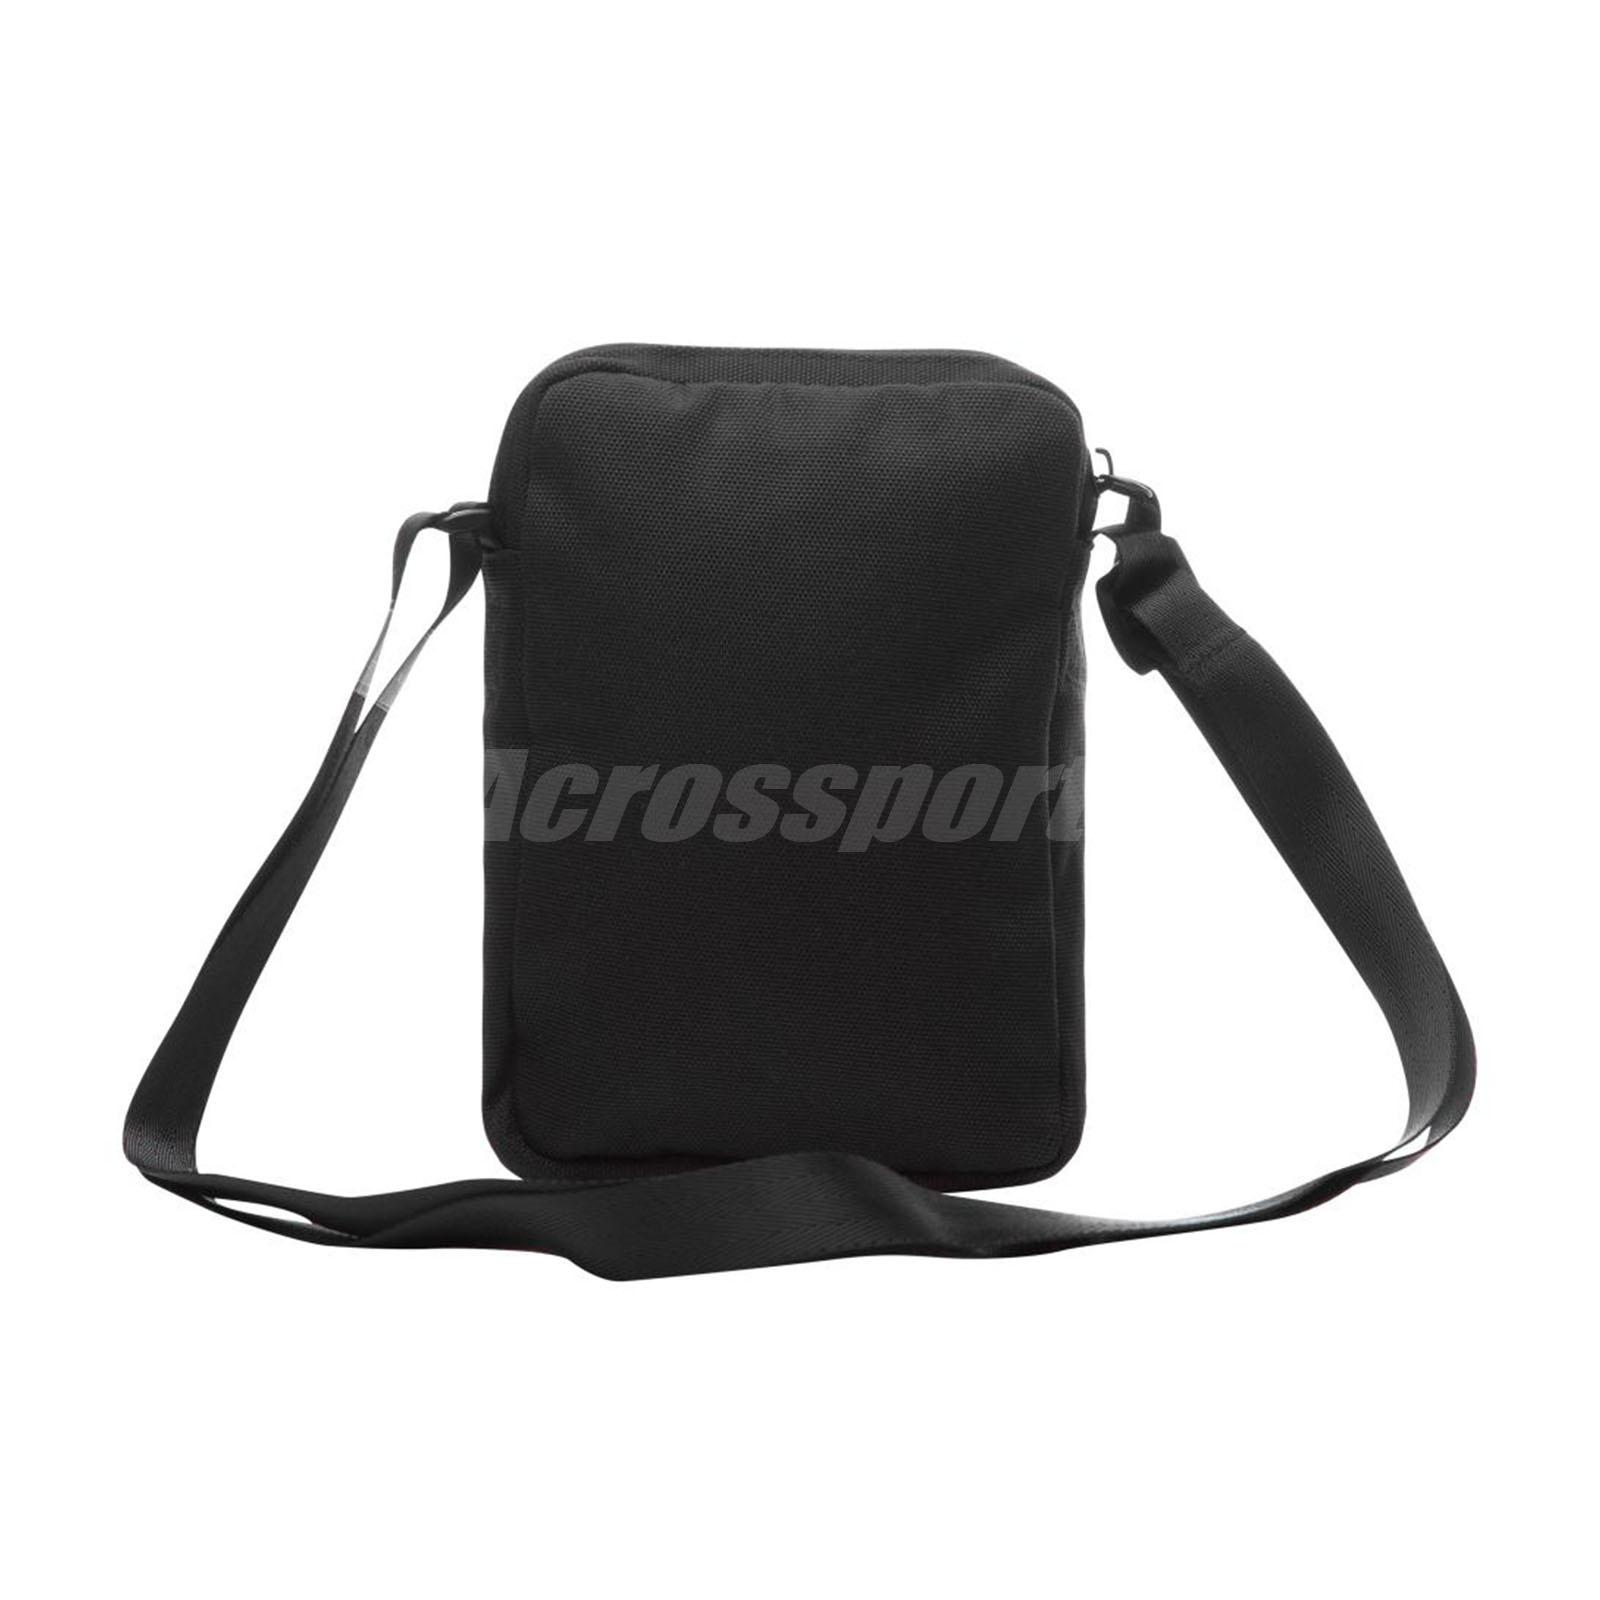 Nike Jordan Airborne Crossbody Shoulder Bag Small Mini Handbag Black ... 6acb54b0ad7db